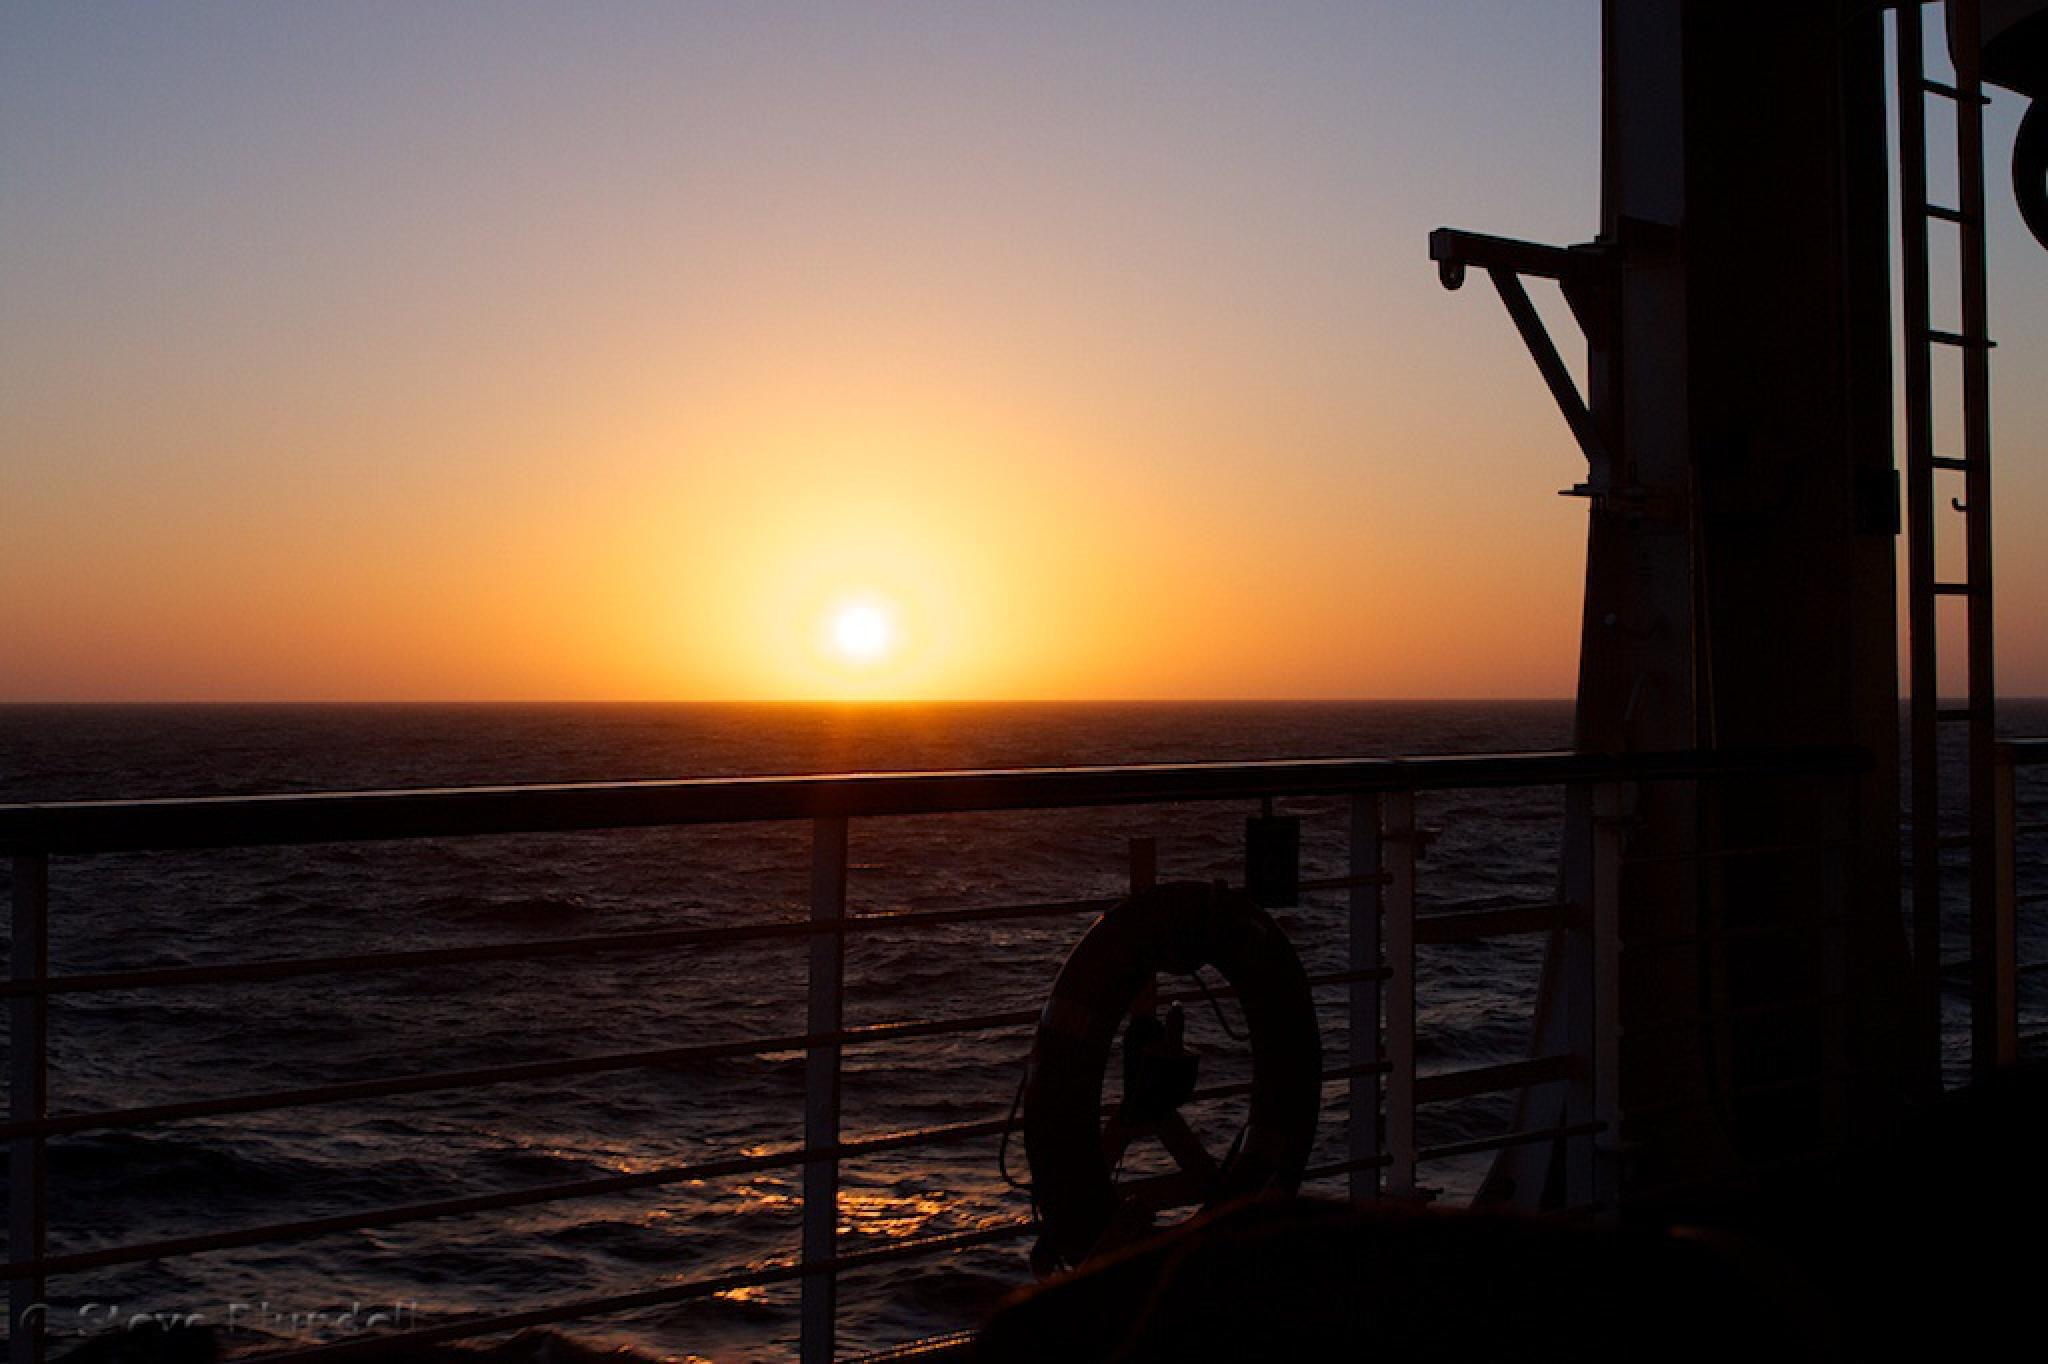 Onboard at sunset by Steve Blundell